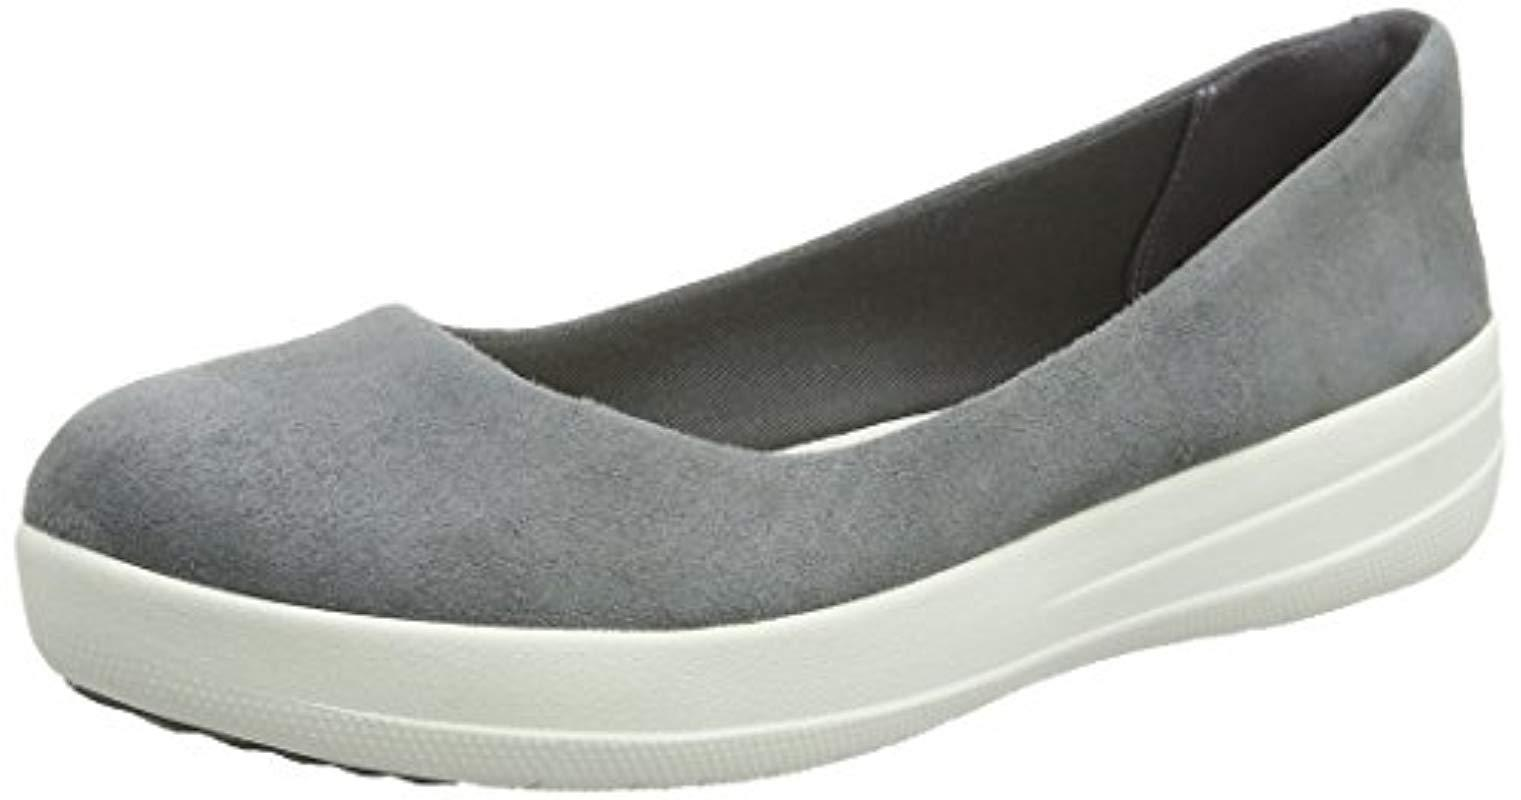 6f7999a2c0592c Fitflop F-sporty Ballerina Ballet Flats in Gray - Lyst